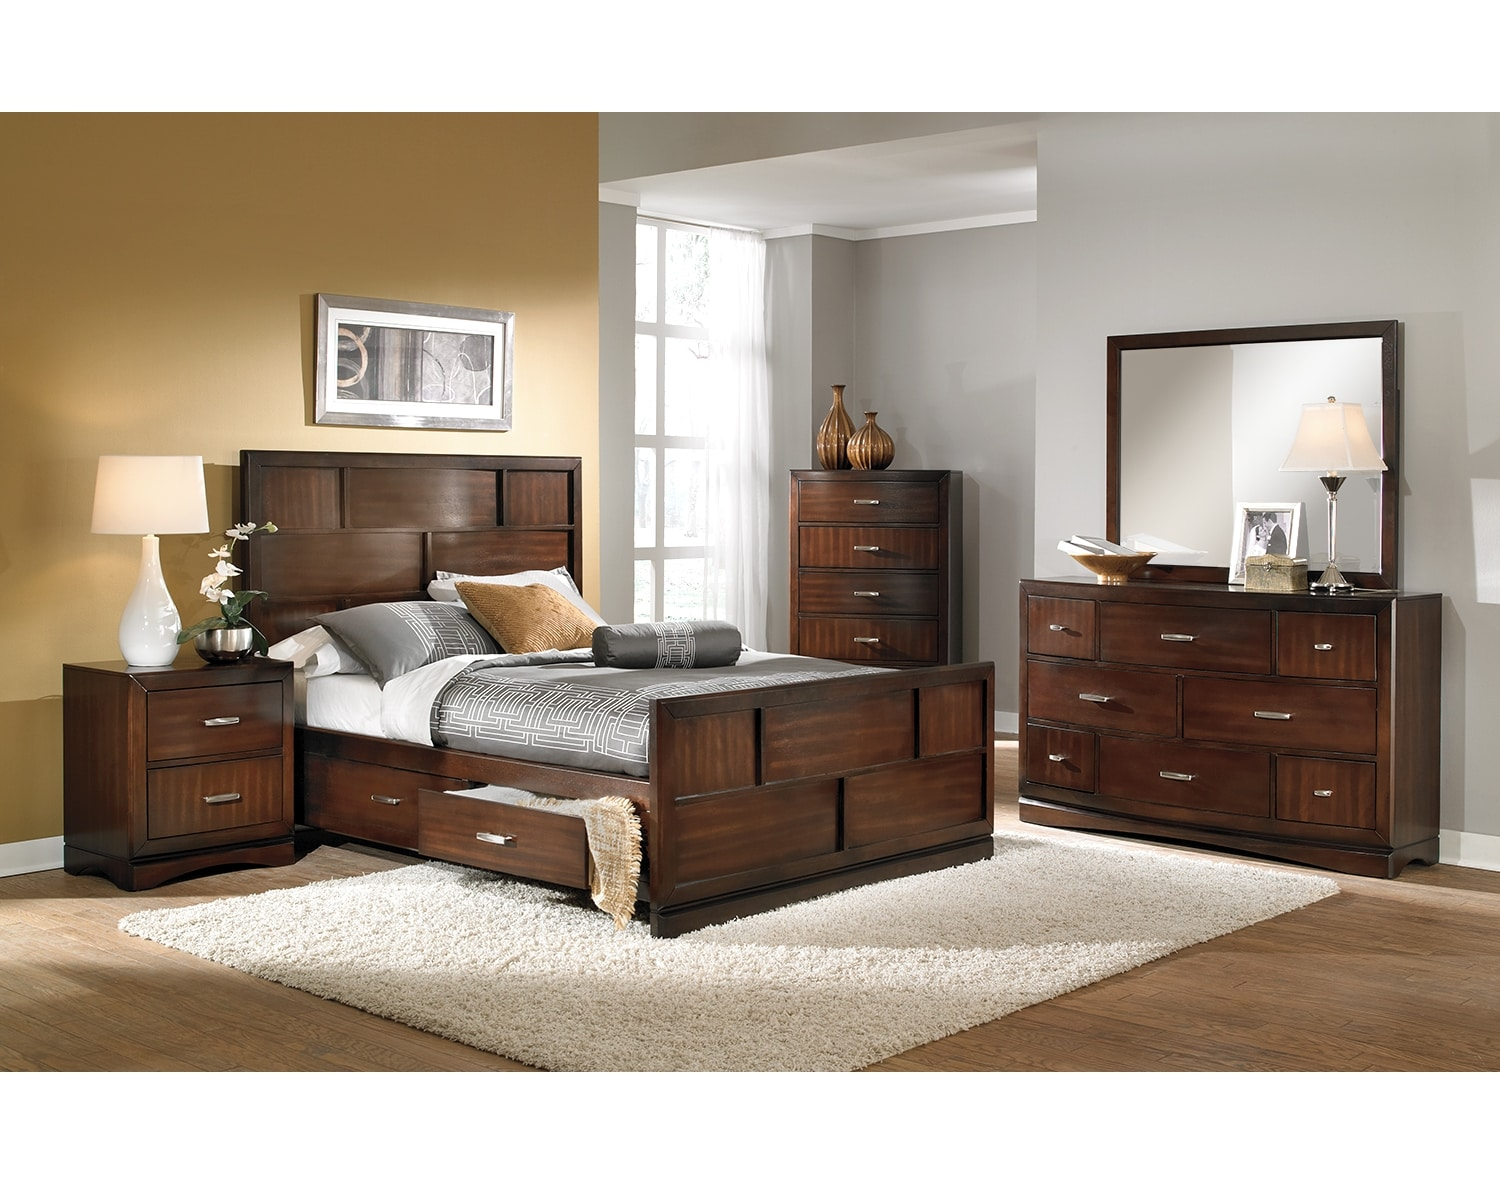 The Toronto Collection Pecan Value City Furniture and Mattresses